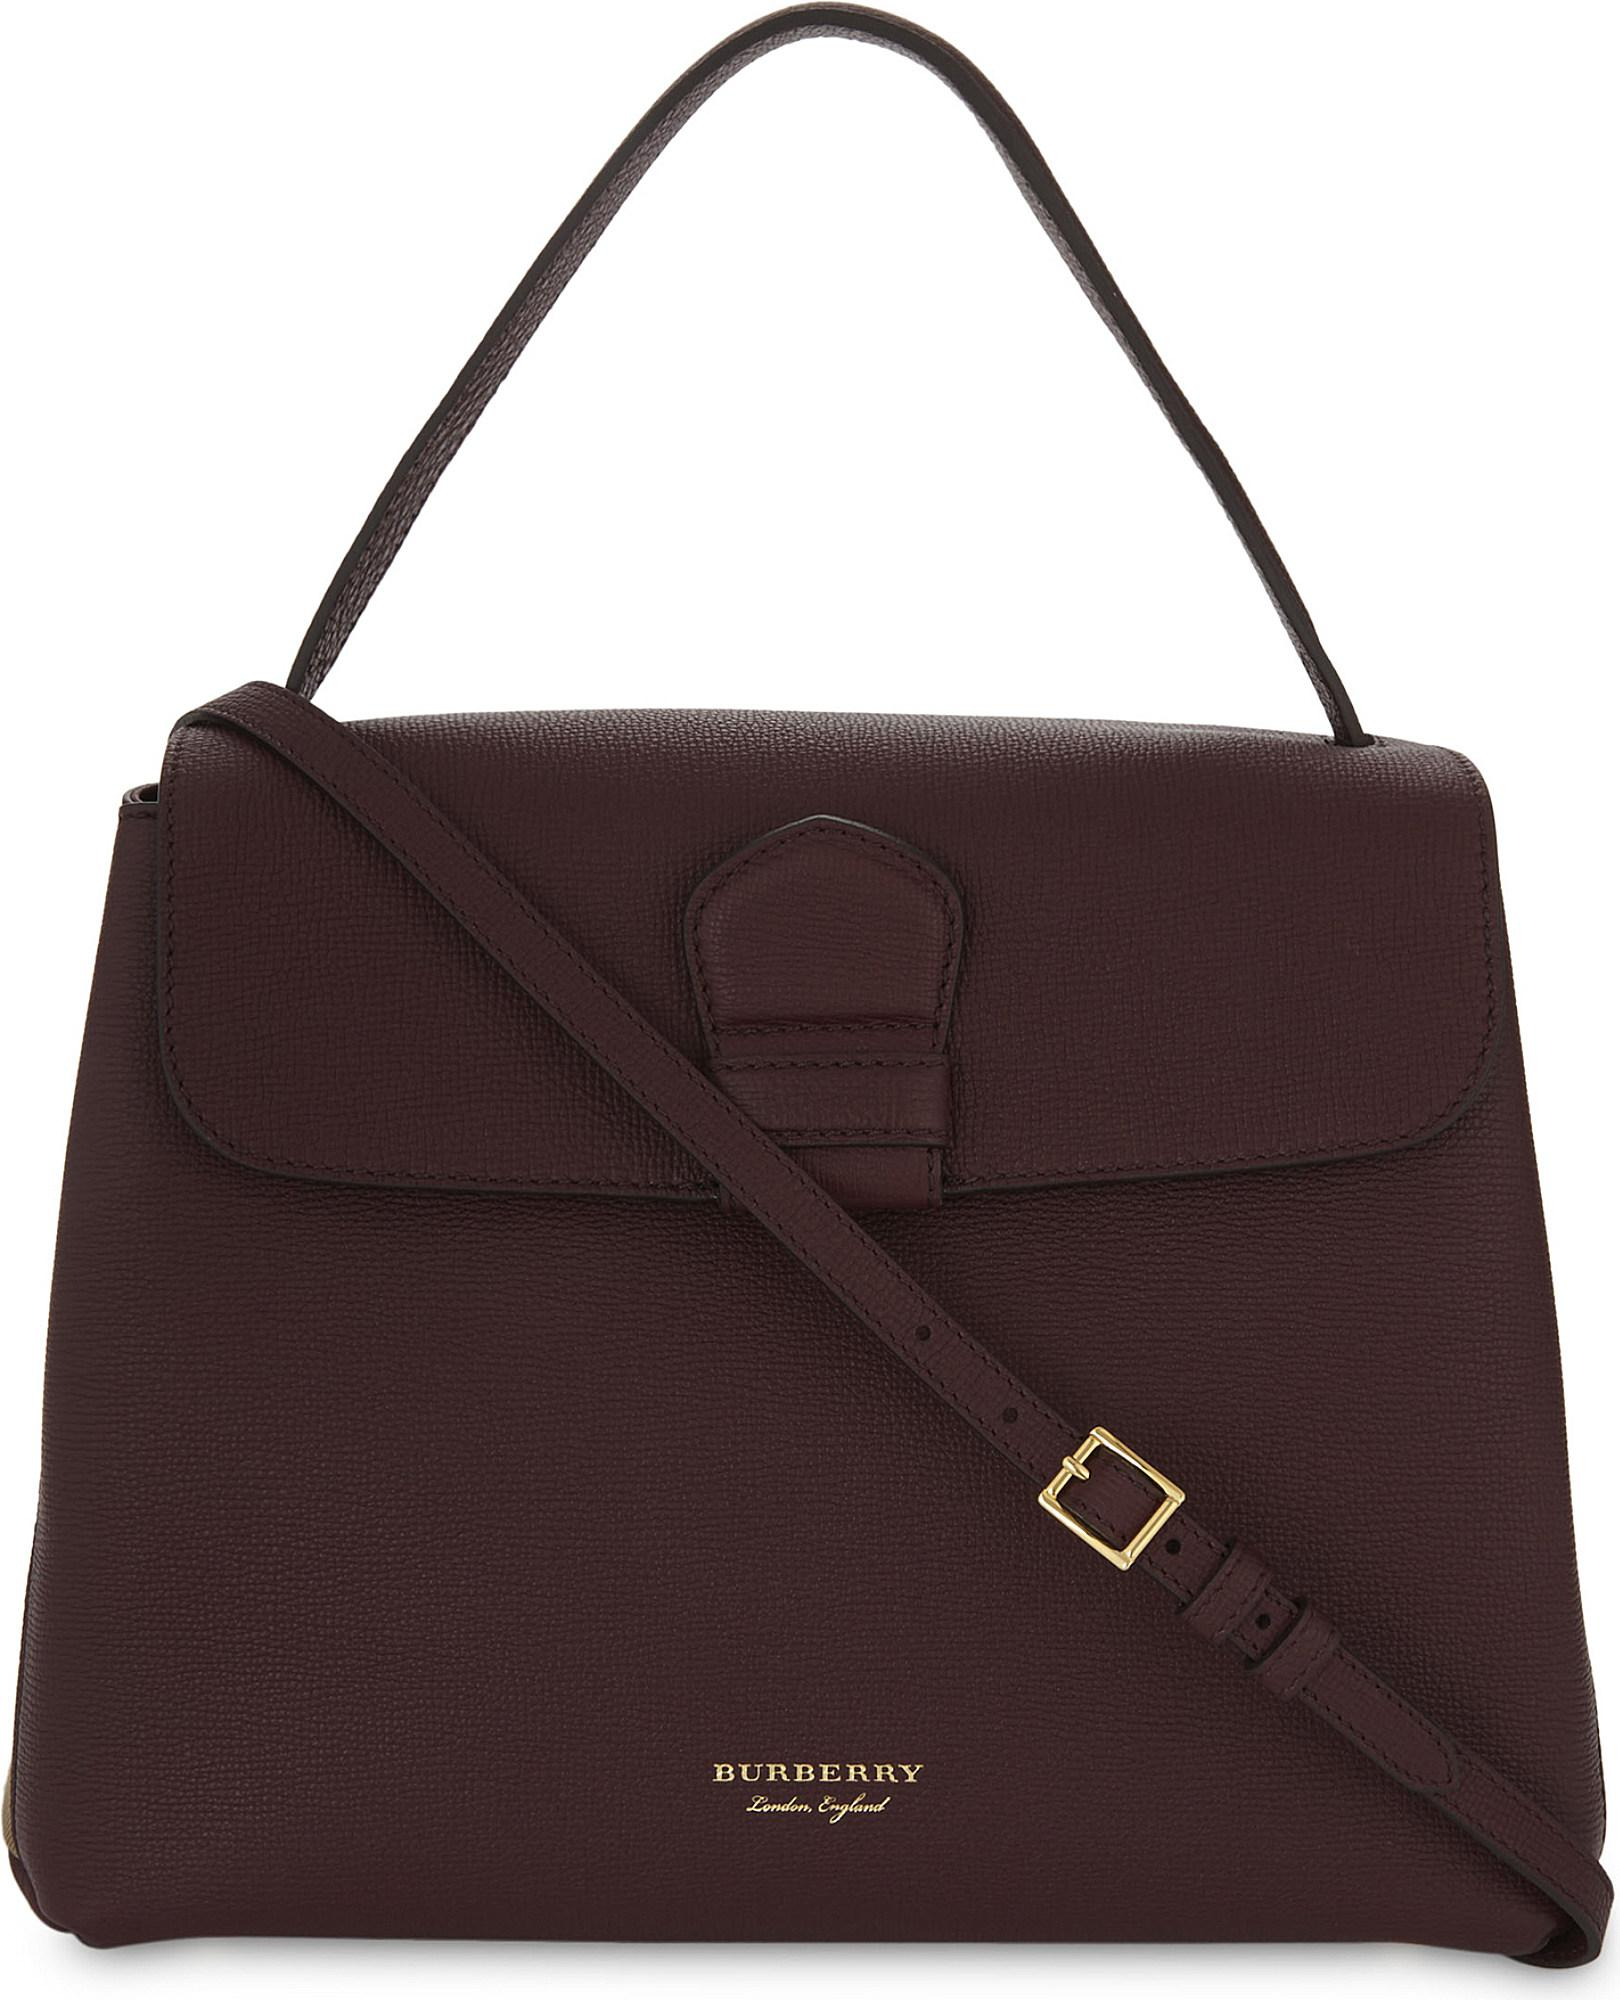 Lyst - Burberry Camberley Medium Grained Leather Shoulder Bag in Red 718b9af4aca43